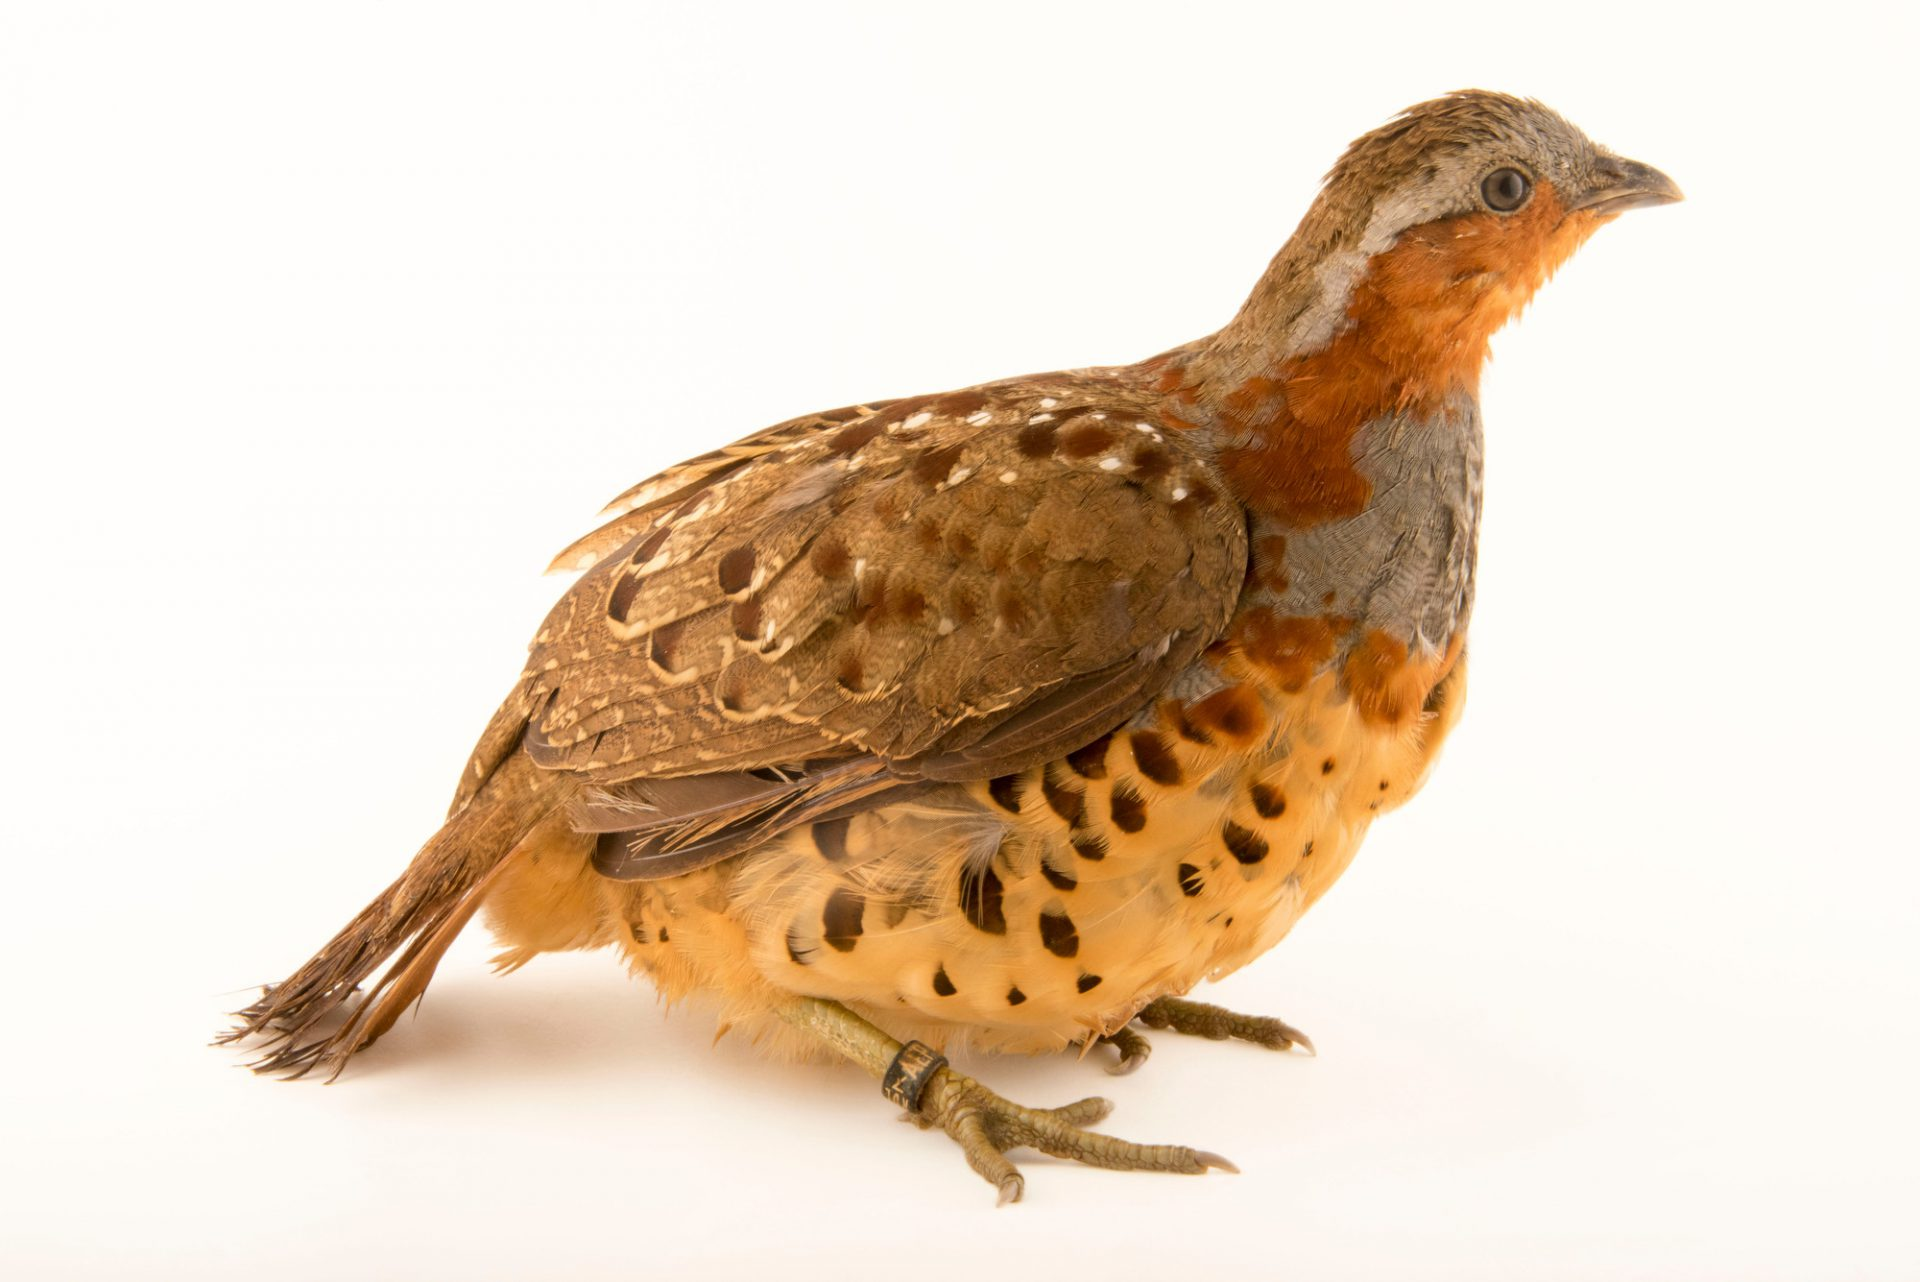 Photo: A Chinese bamboo partridge (Bambusicola thoracicus thoracicus) at Jurong Bird Park.